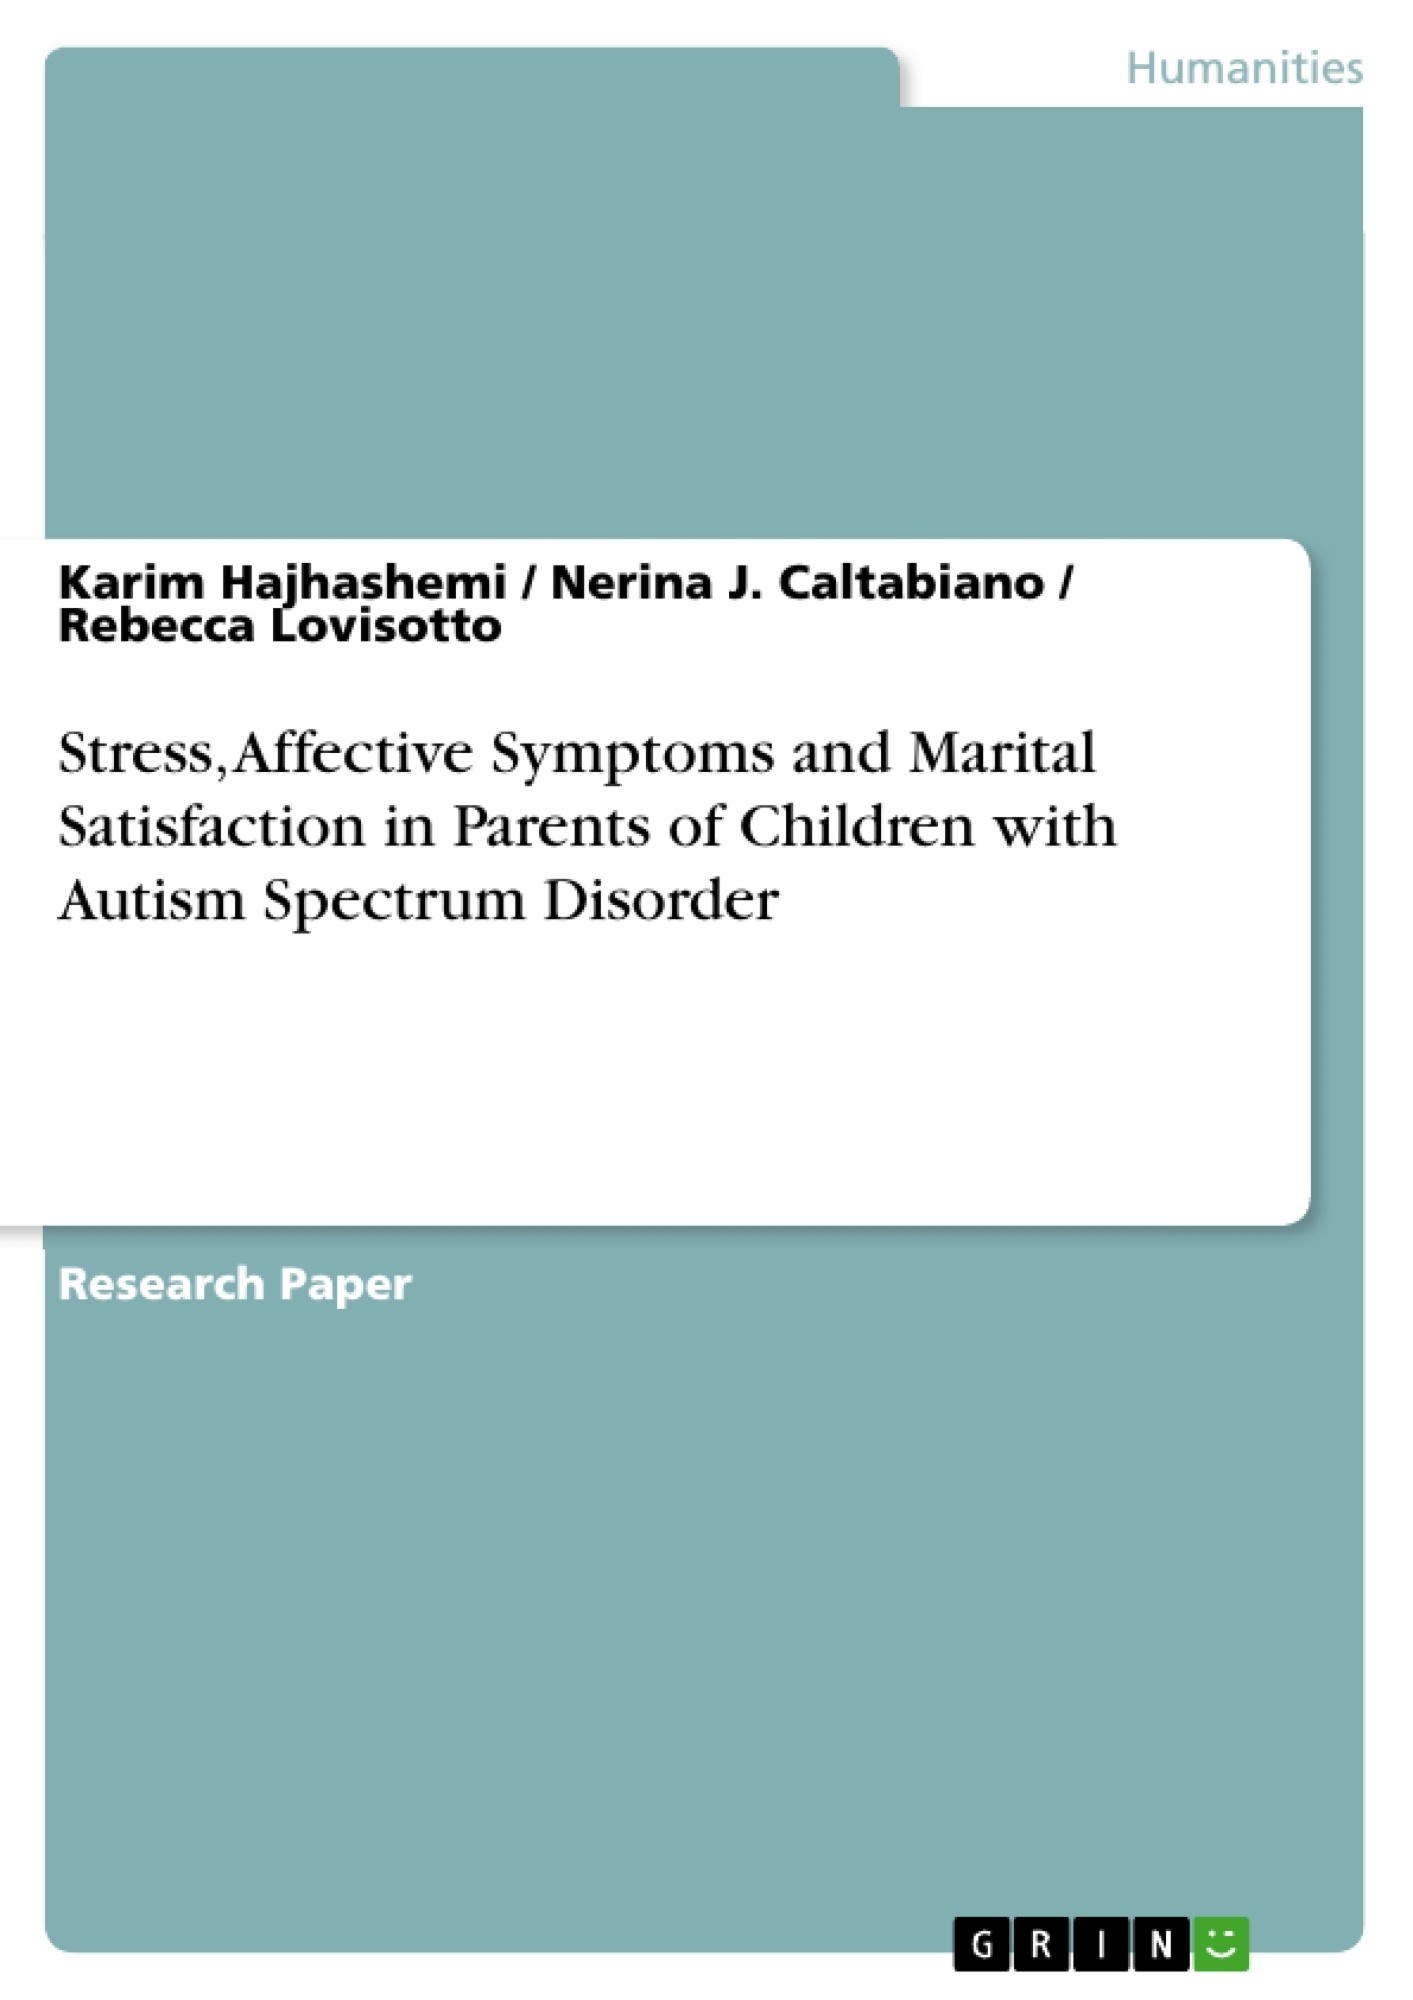 009 313796 0 Autism Spectrum Disorder Researchs Awesome Research Papers Paper Topics Full